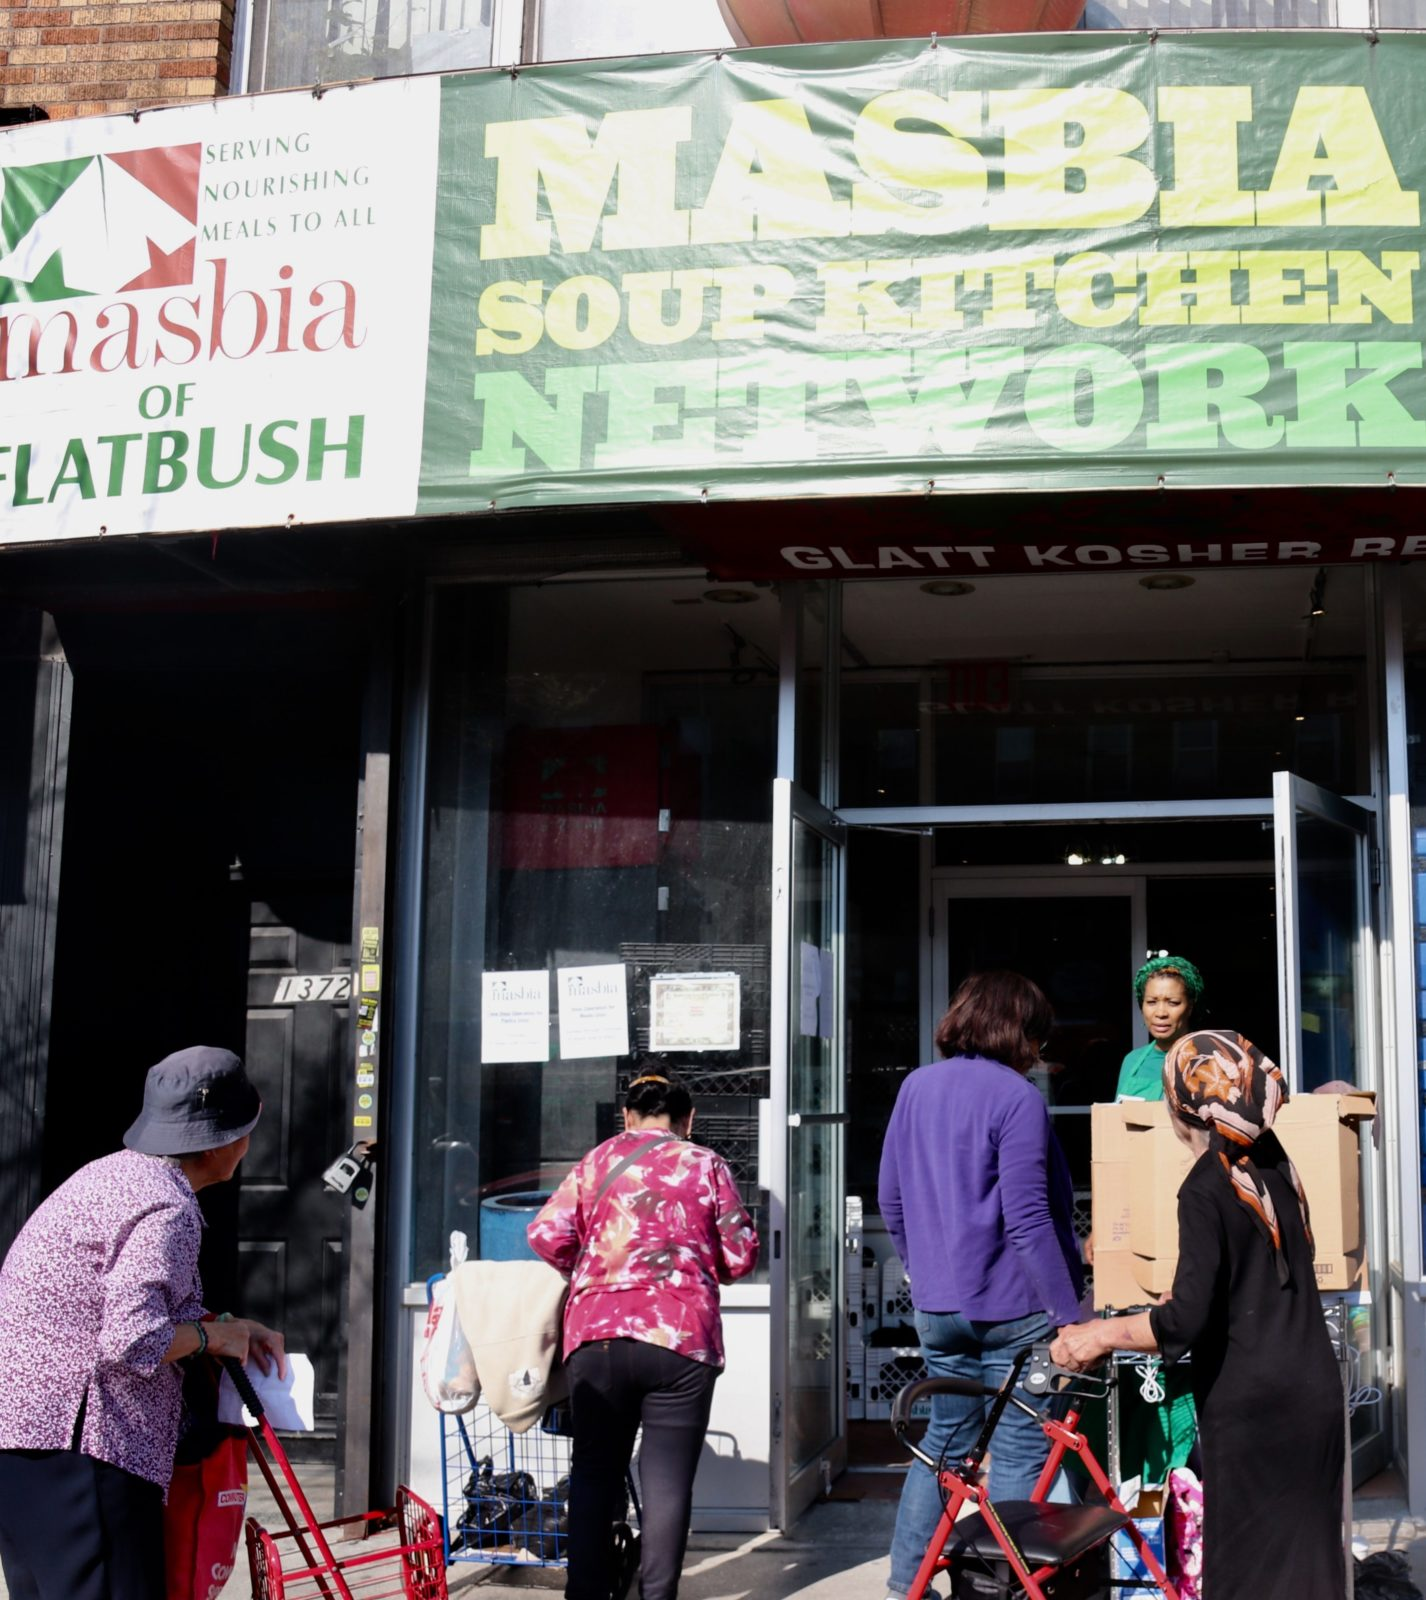 Masbia have been stepping up to help others during the coronavirus pandemic.